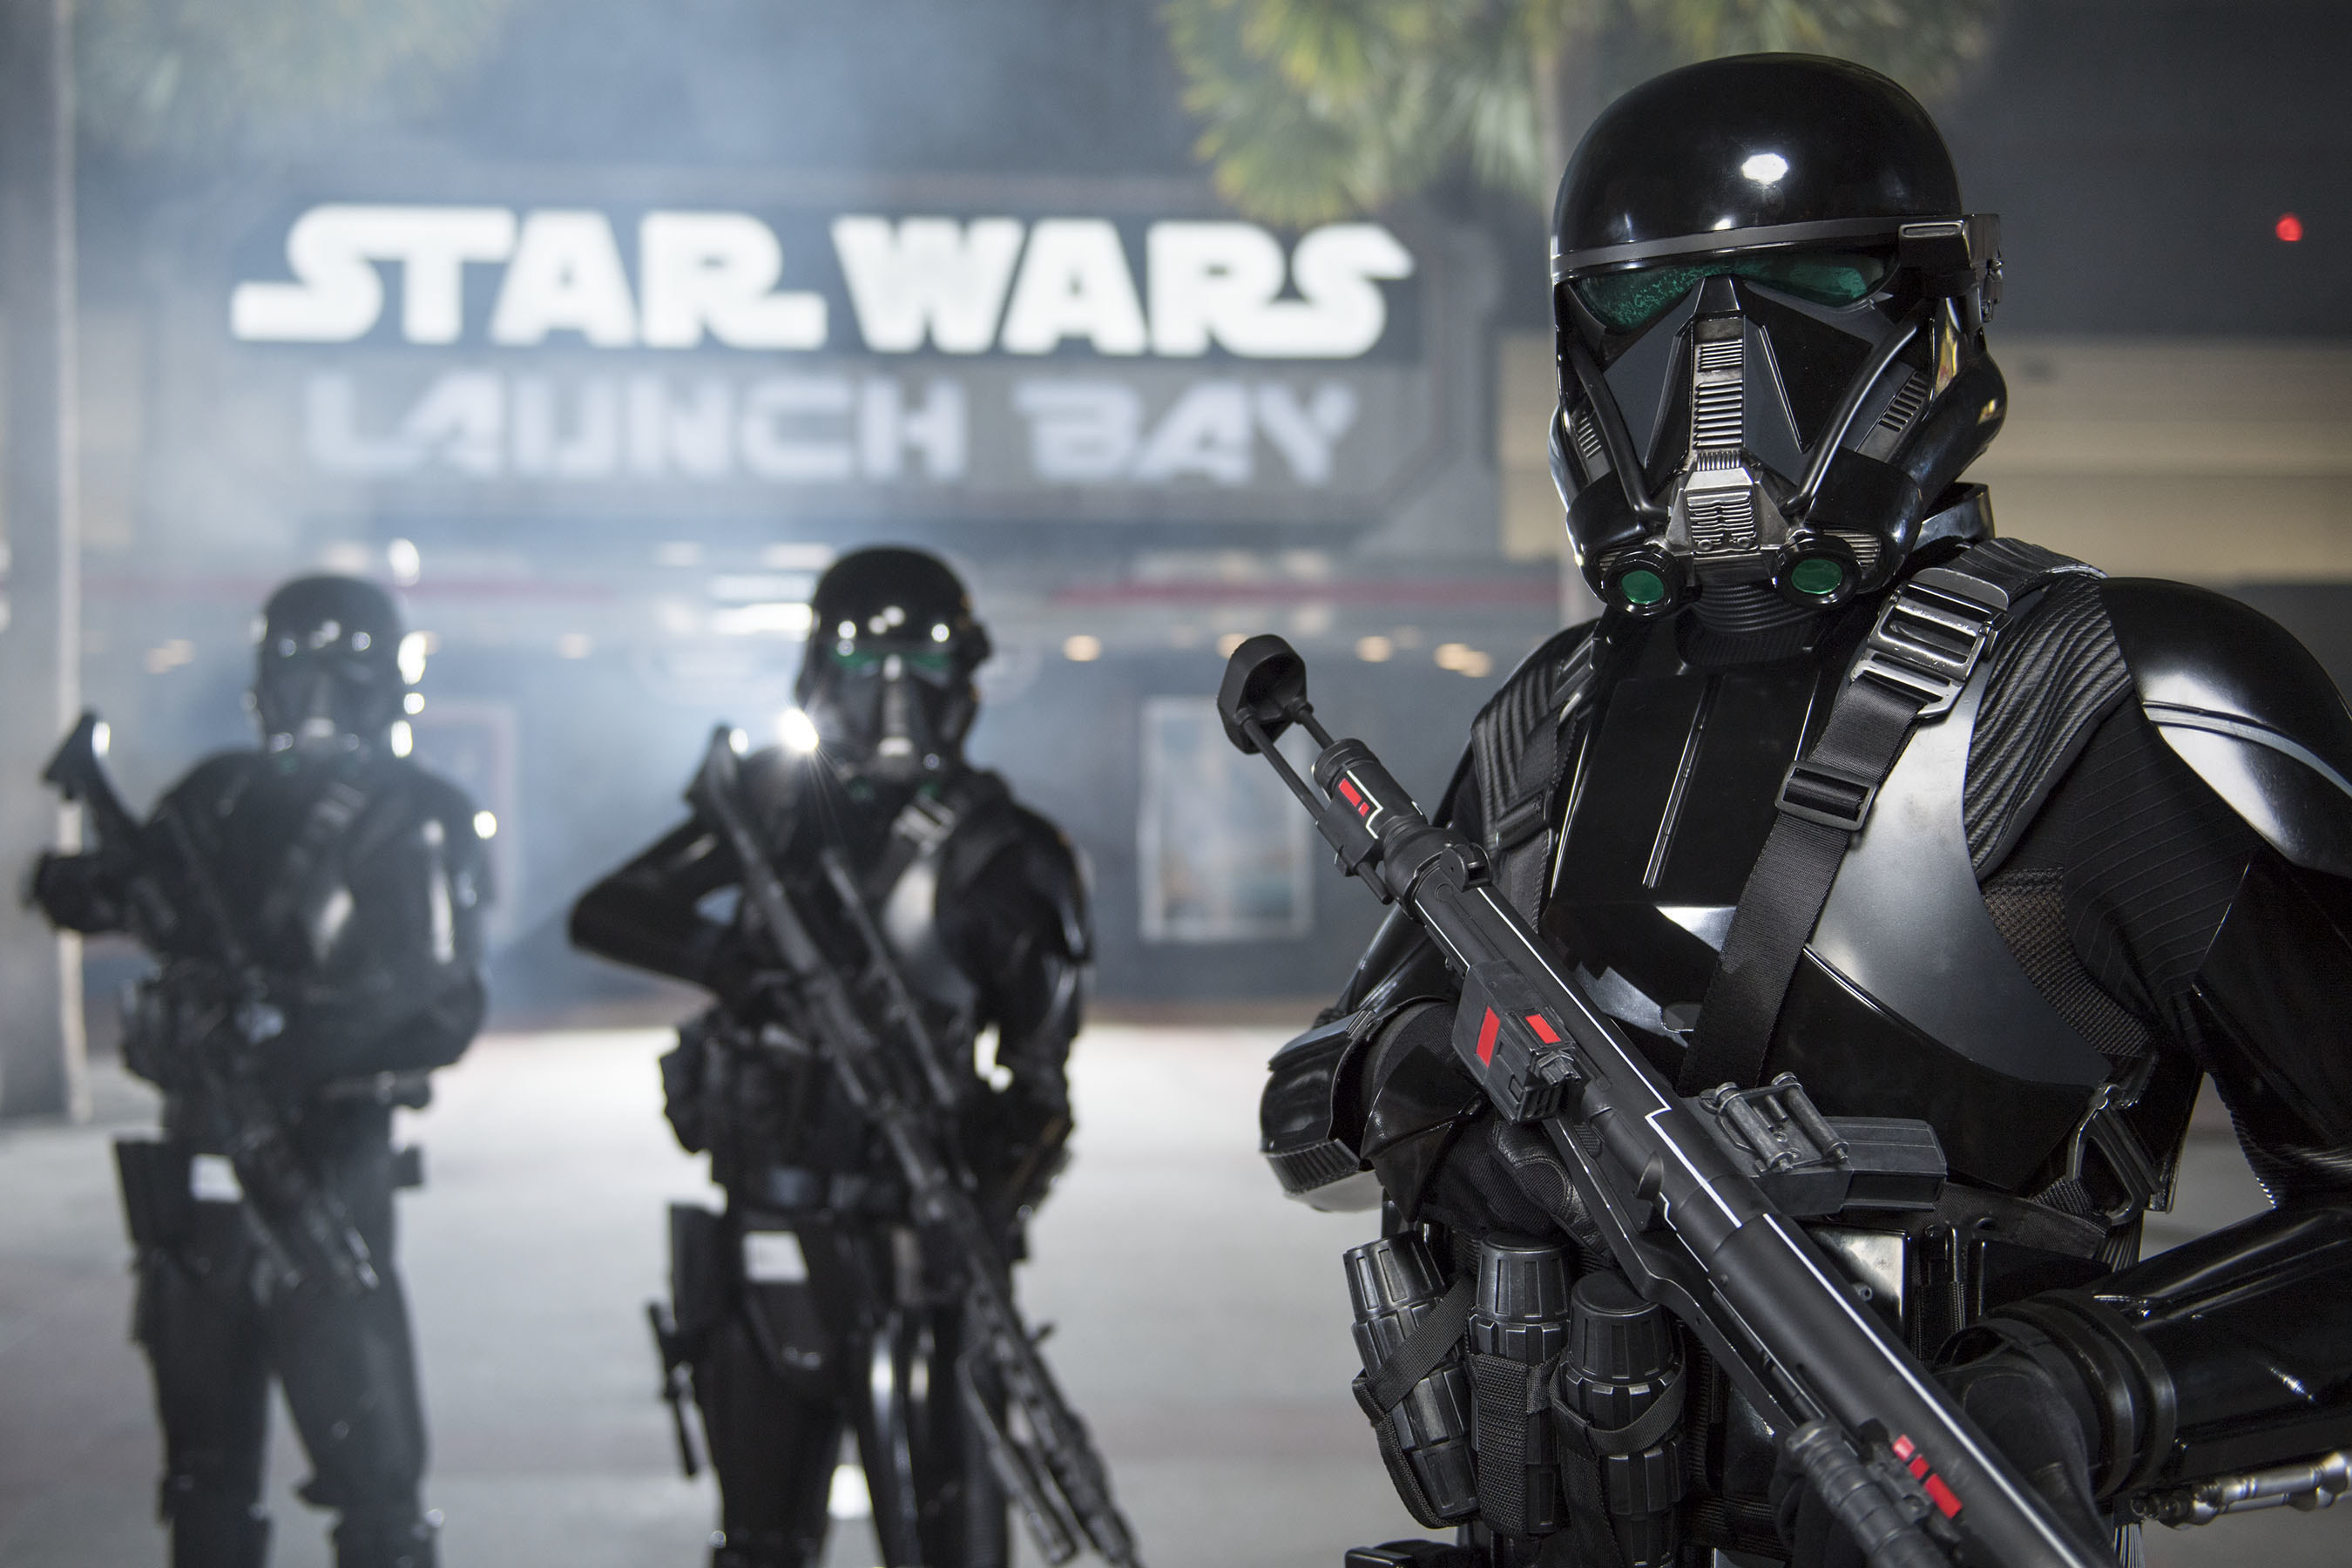 George Lucas has given his verdict on Rogue One